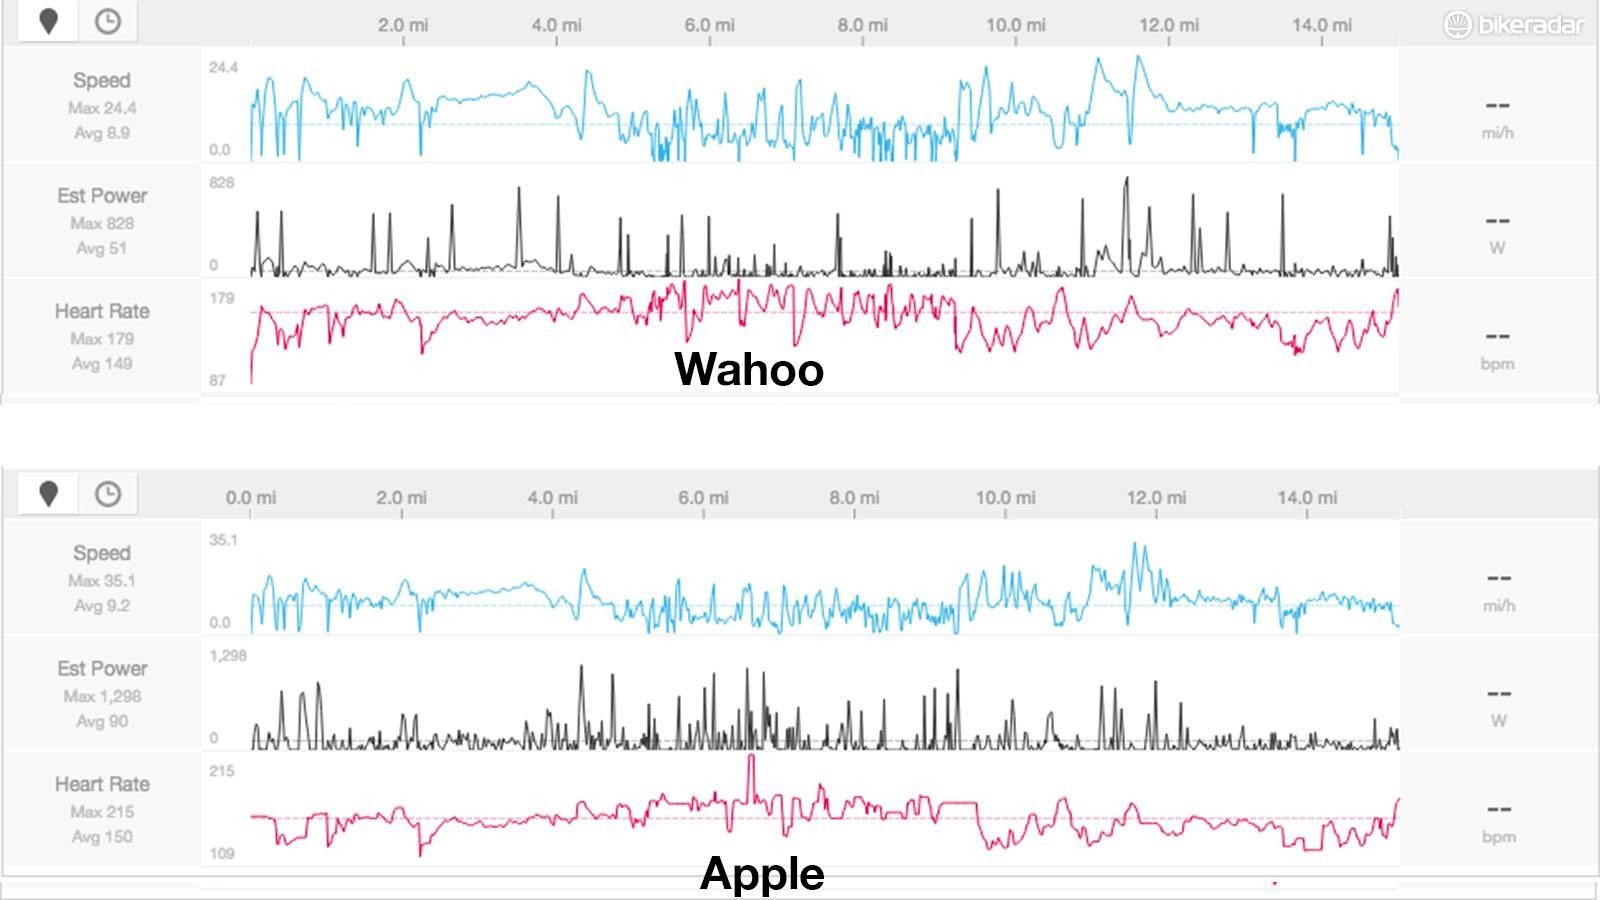 This is the data from an MTB ride, as you can see the heart rate profiles are quite different